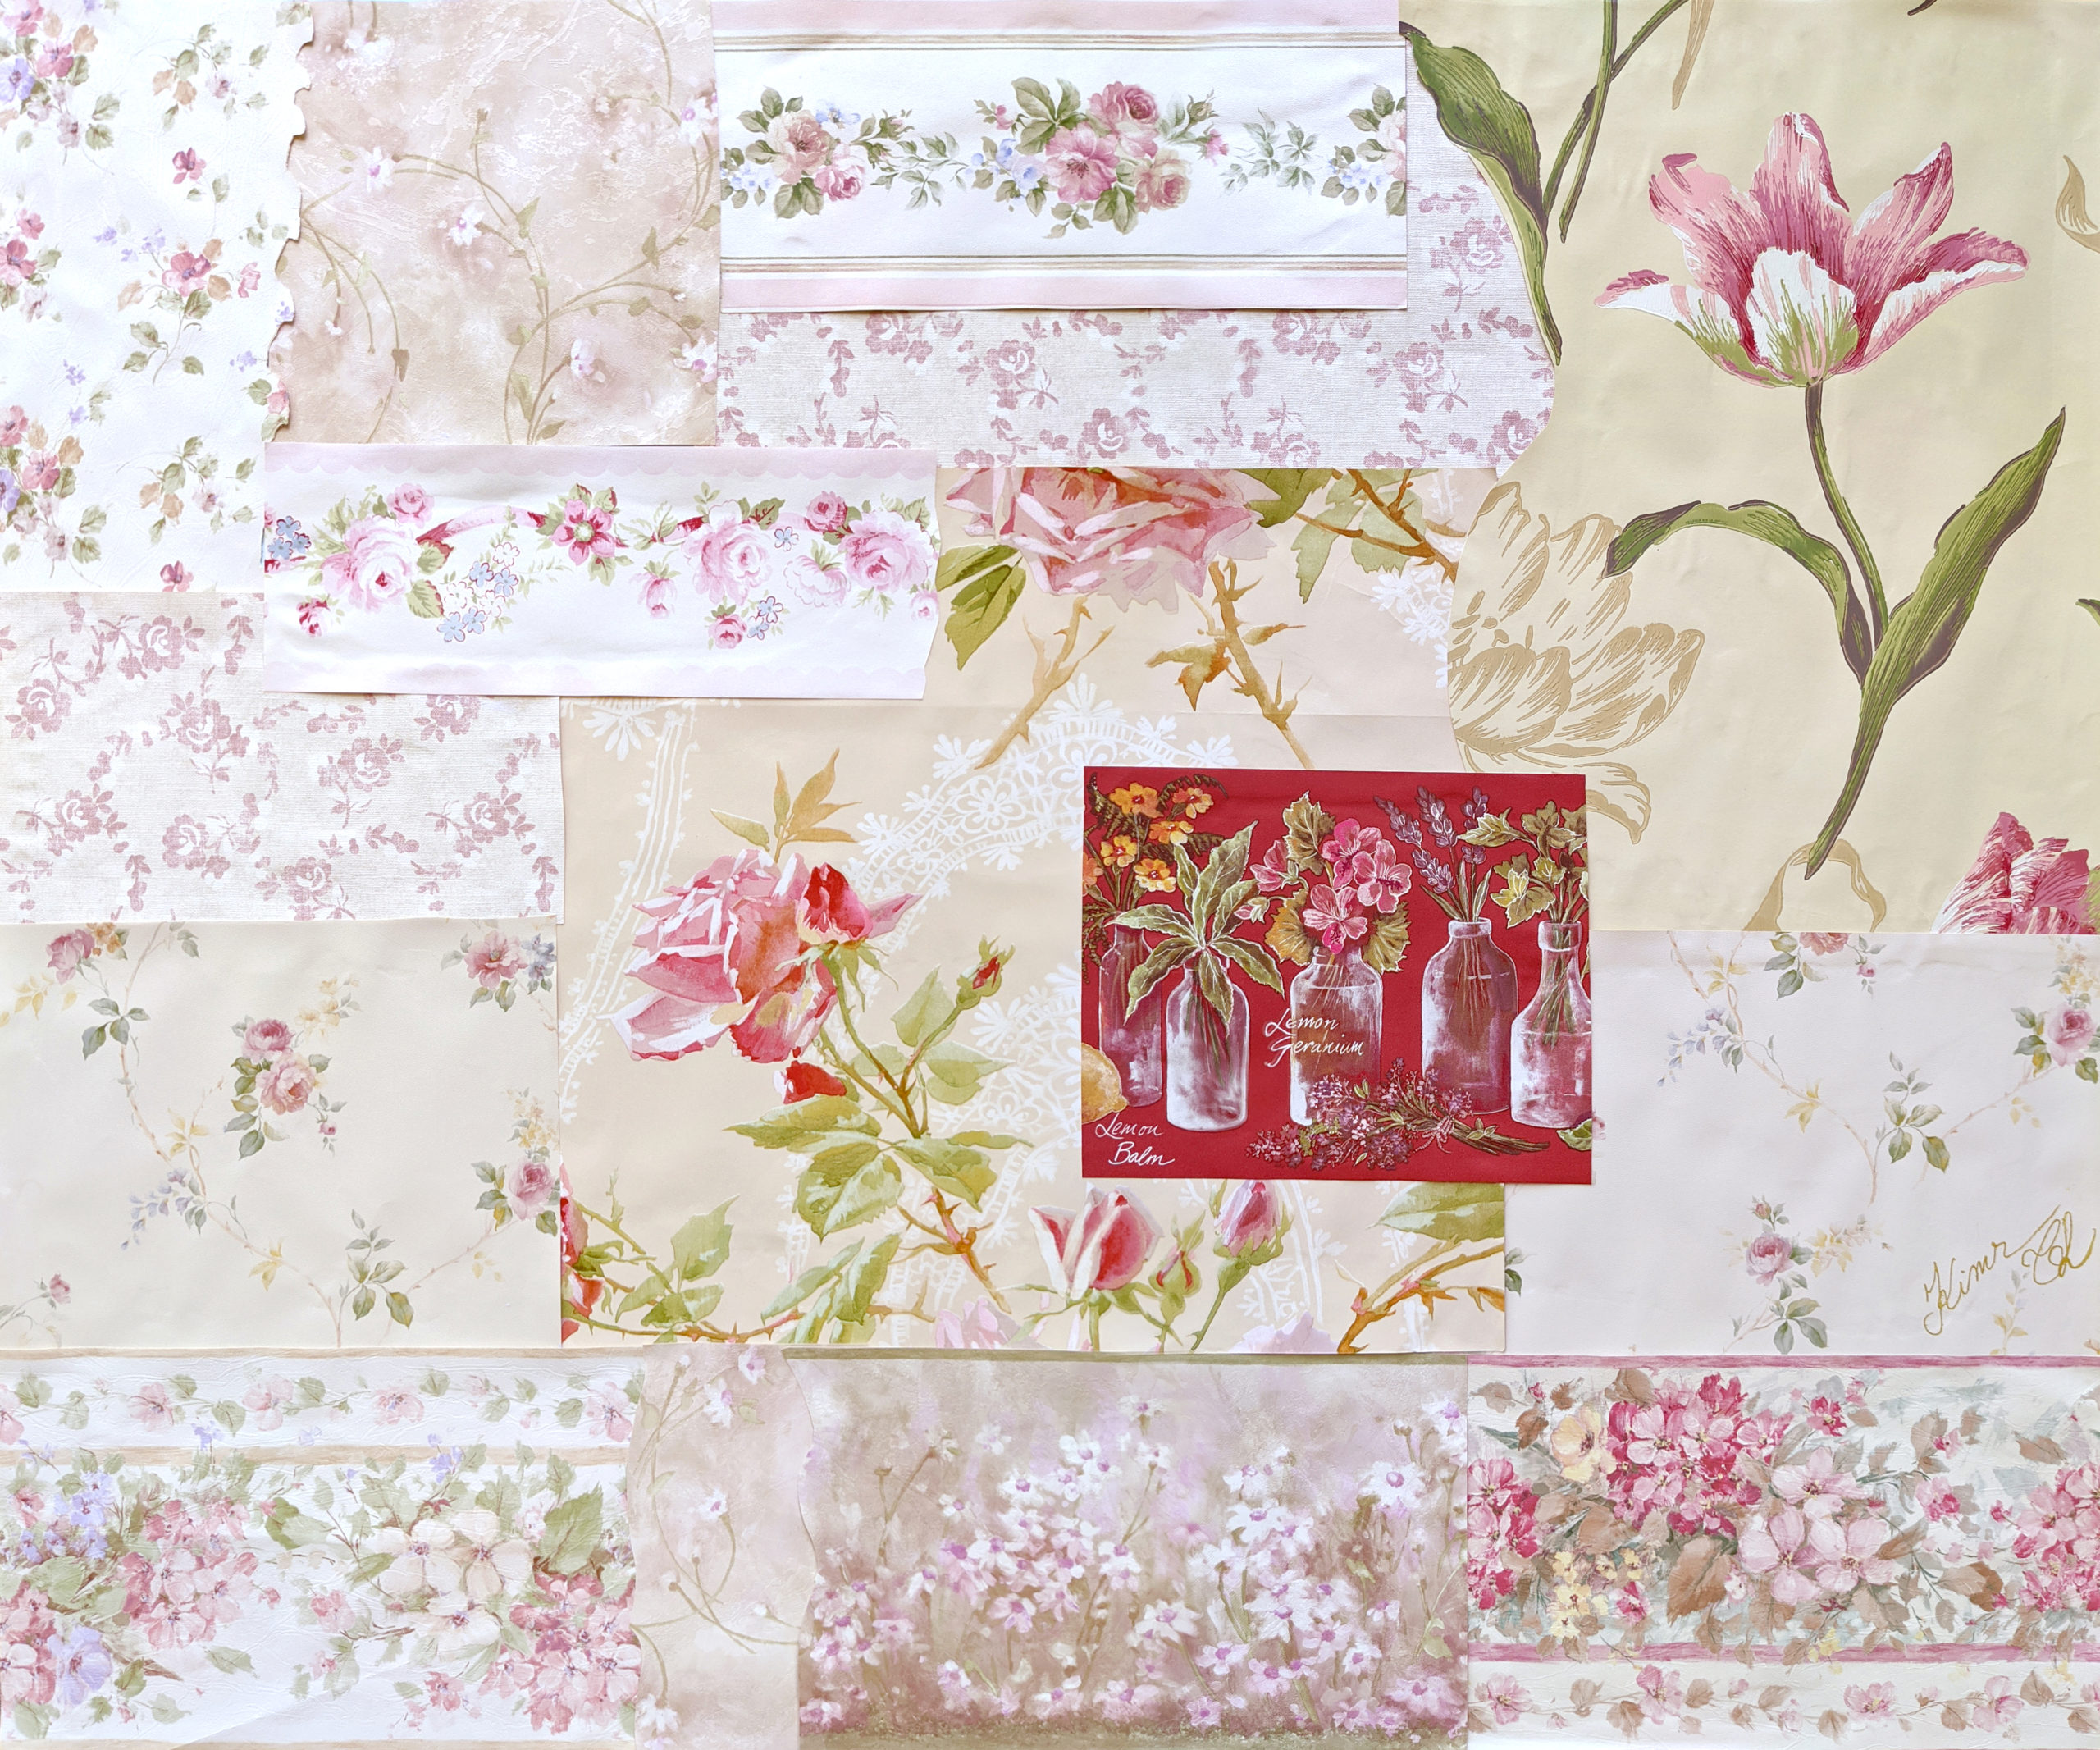 Collage of floral papers in pink, red, and green, with off-center piece of red background with flowers in glass jars